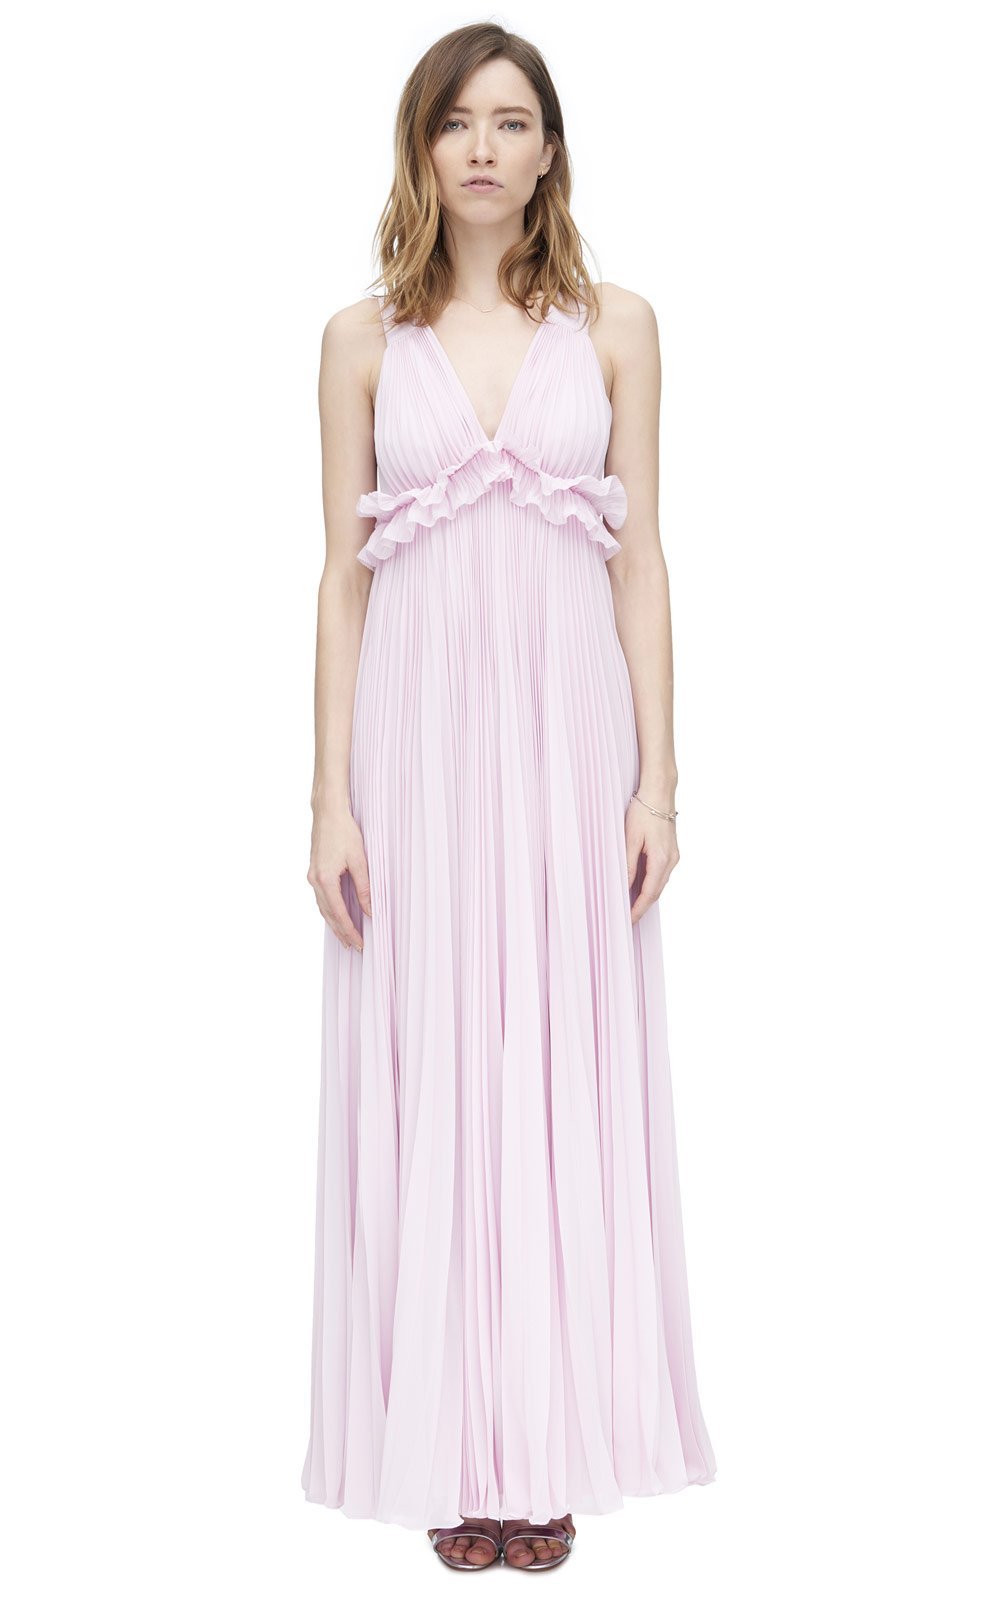 Lyst - Rebecca Taylor Chiffon Pleat Gown in Pink